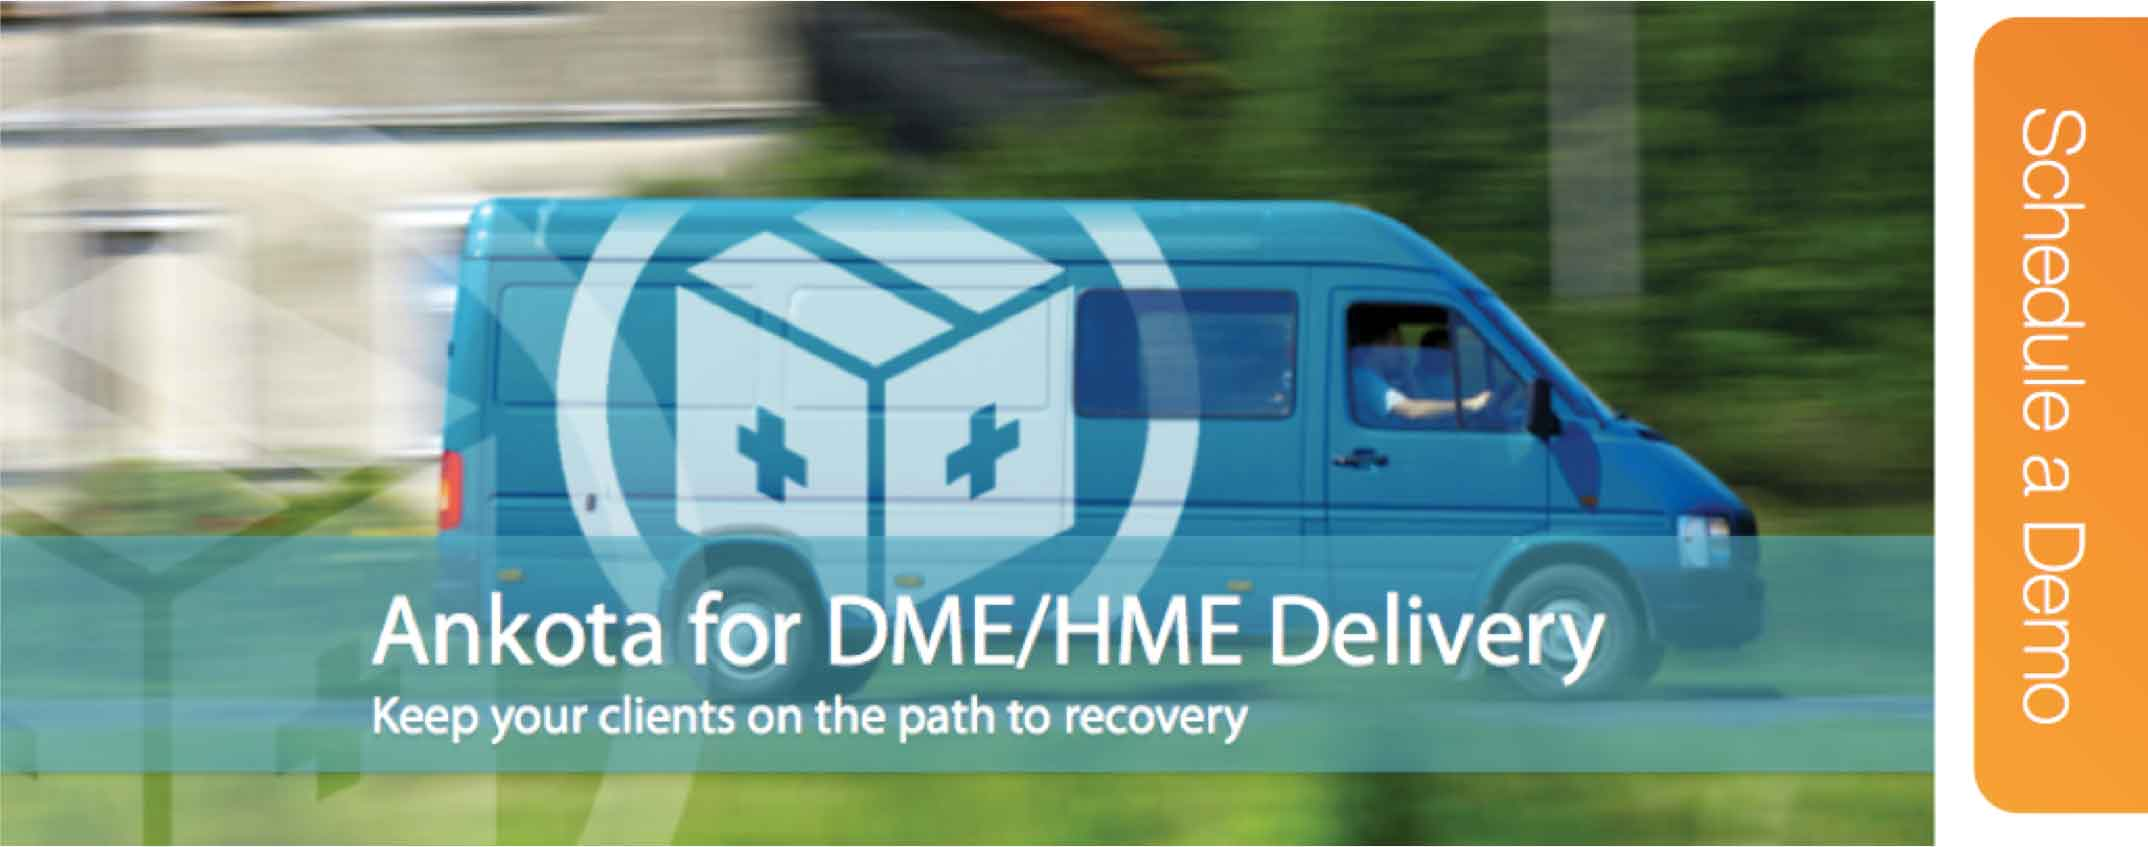 HME-delivery-software